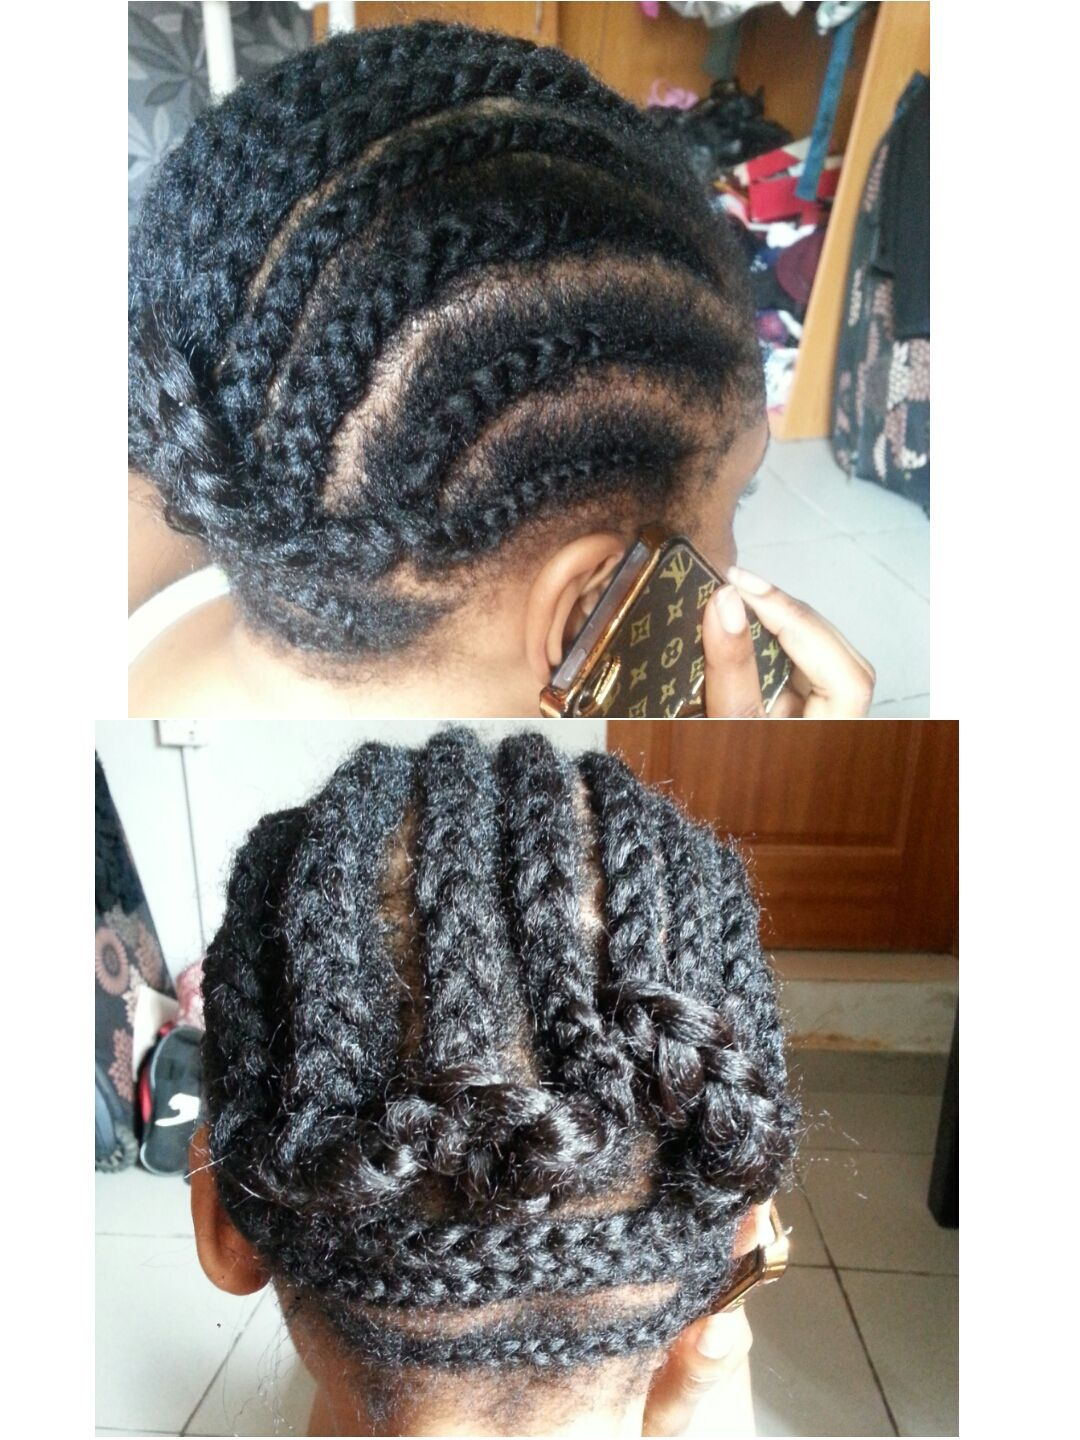 27+ Best Photo of Crochet Braids Pattern - vanessaharding.com #crochetbraids